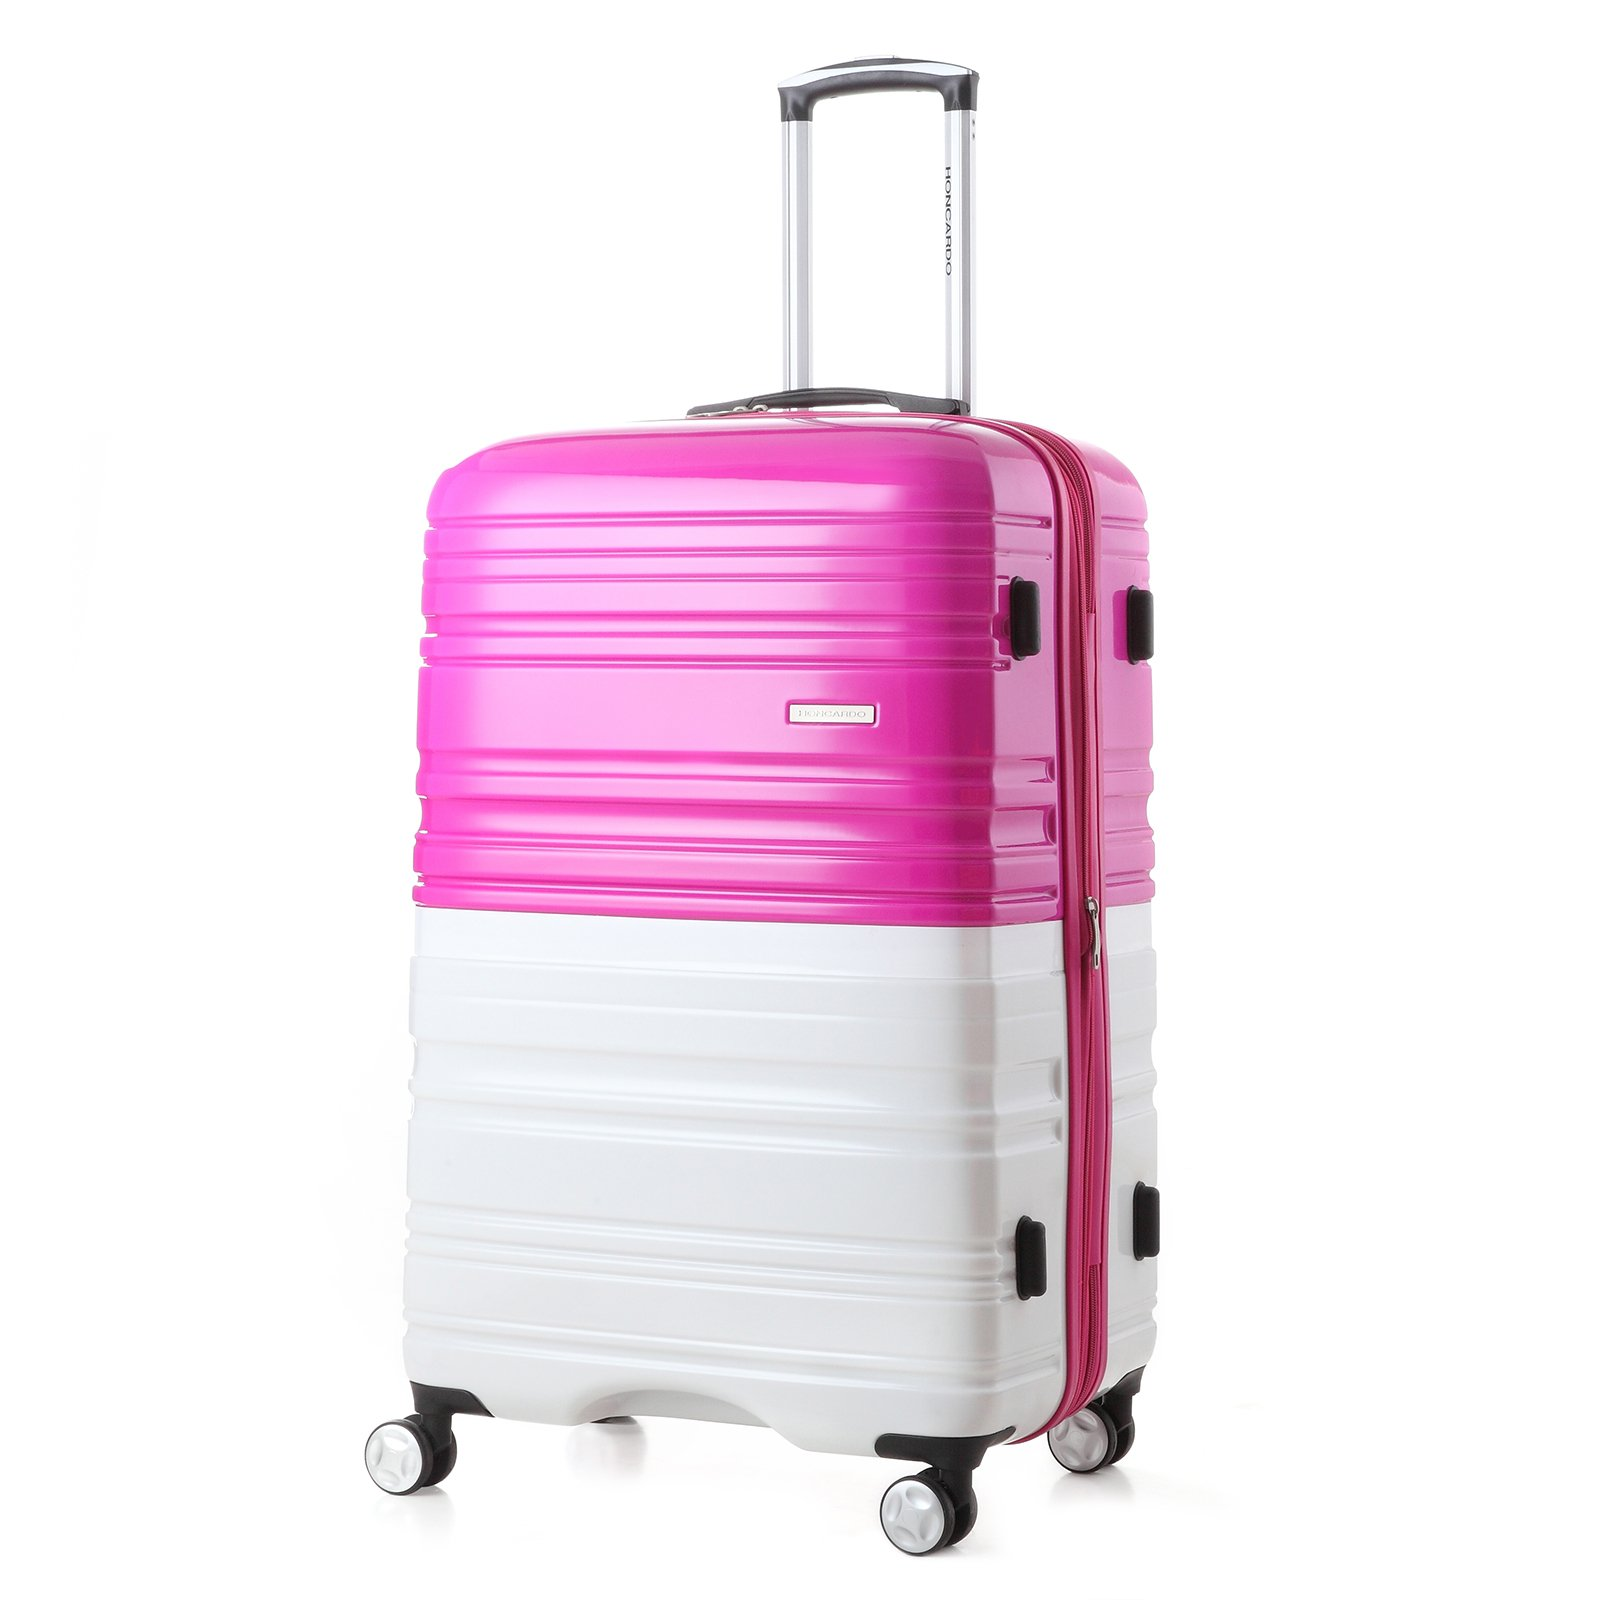 2 Pack Love Box[Boy and girl,daddy and boy,mommy and girl] 20''-28'' Luggage 360° Spinner Wheels Trolley Suitcase TSALock Travel Carryon Bag Hardside Travelhouse (Pink+White) by Chiuer (Image #2)